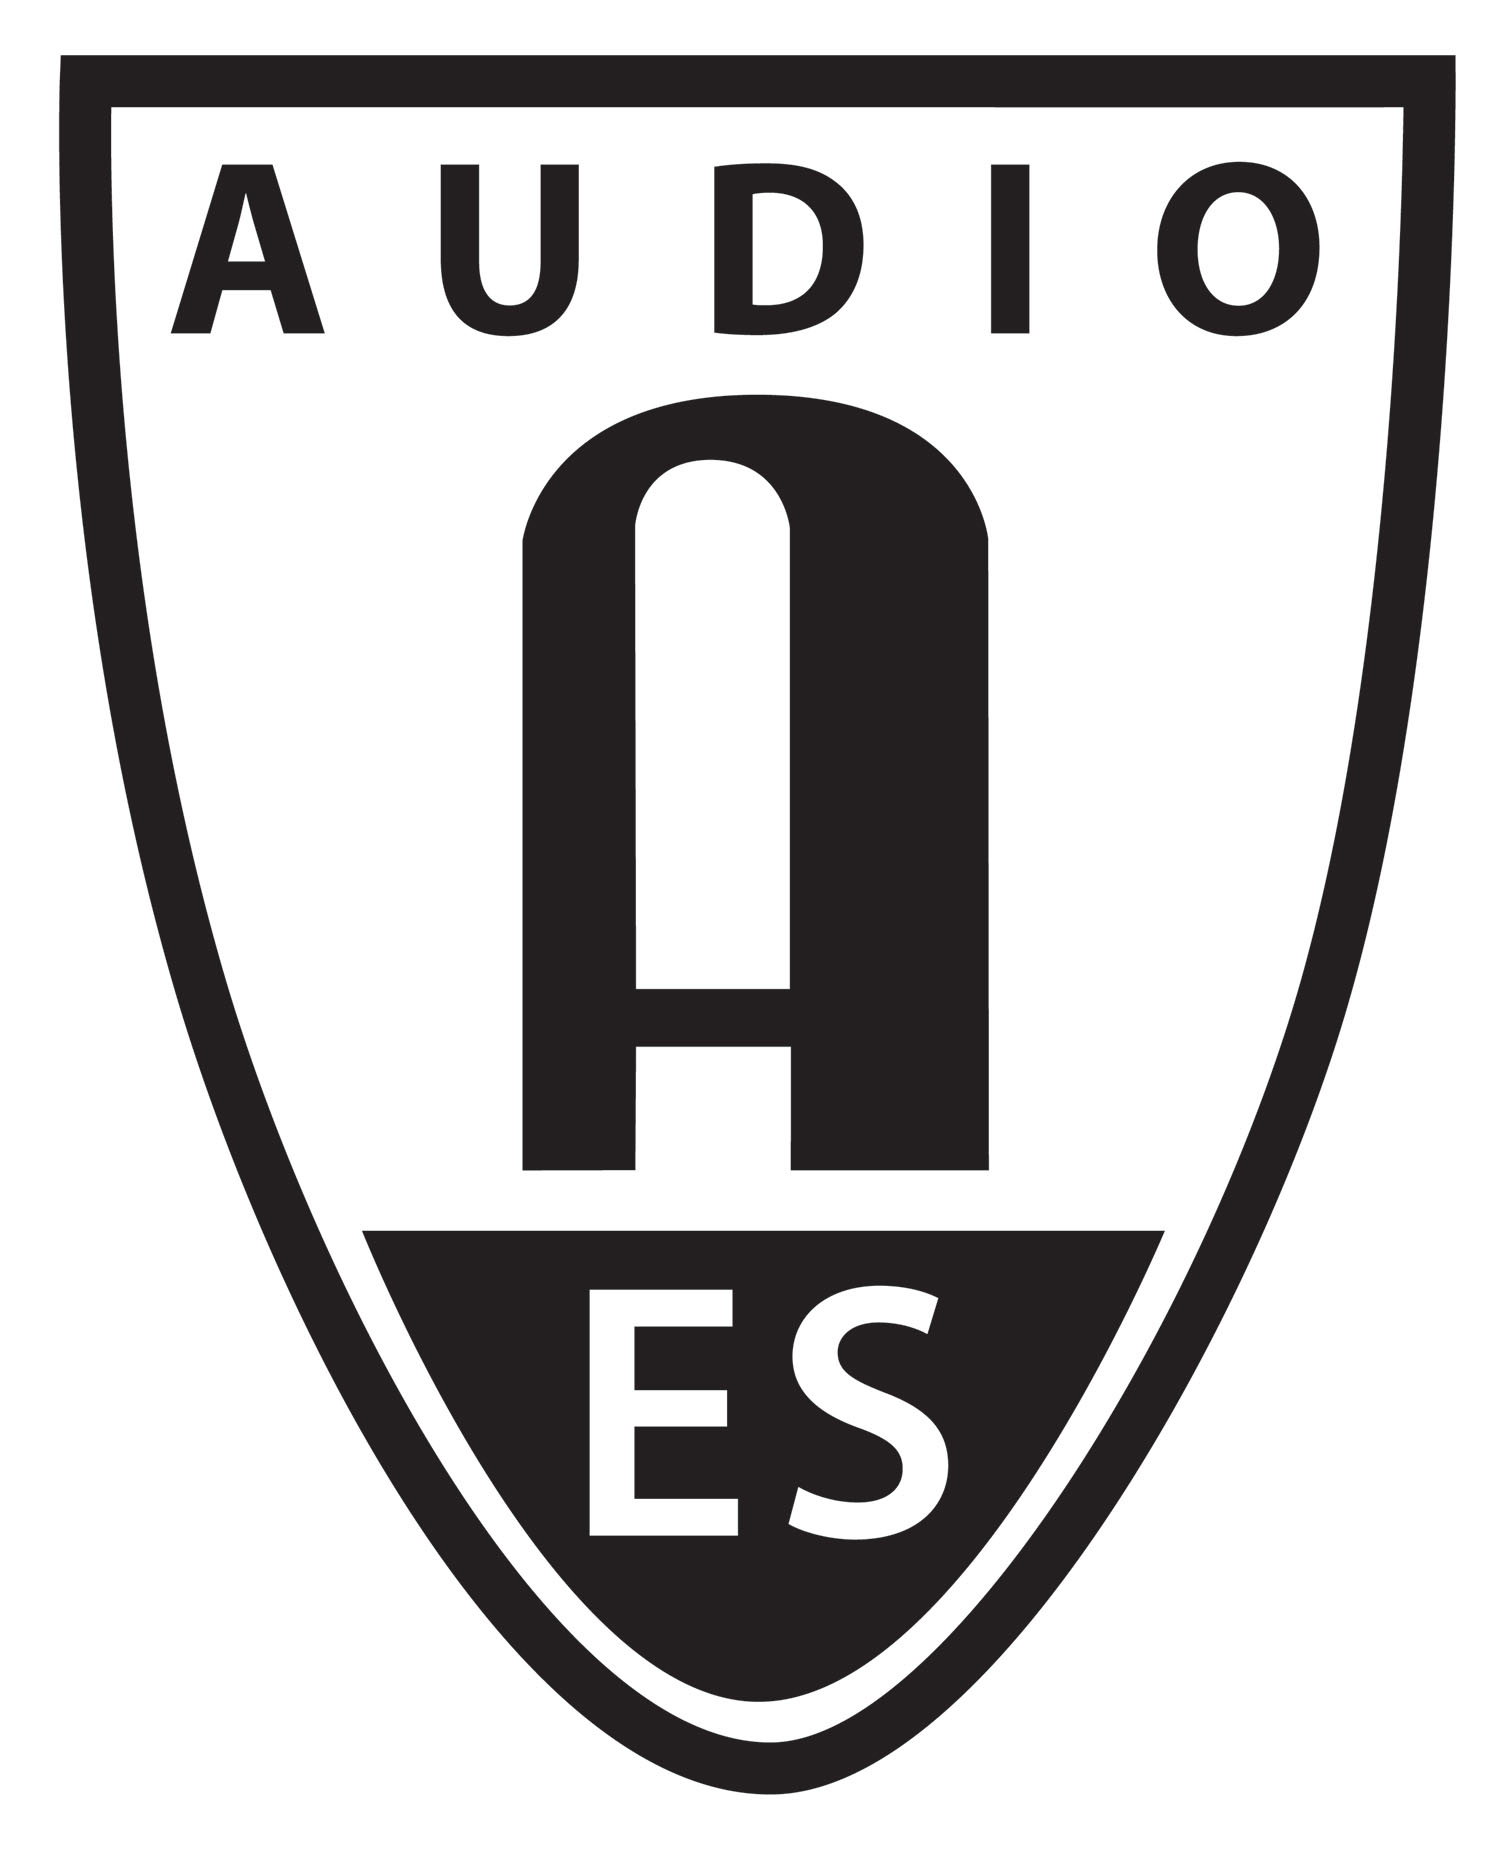 audio engineering society to join the 2018 namm show in